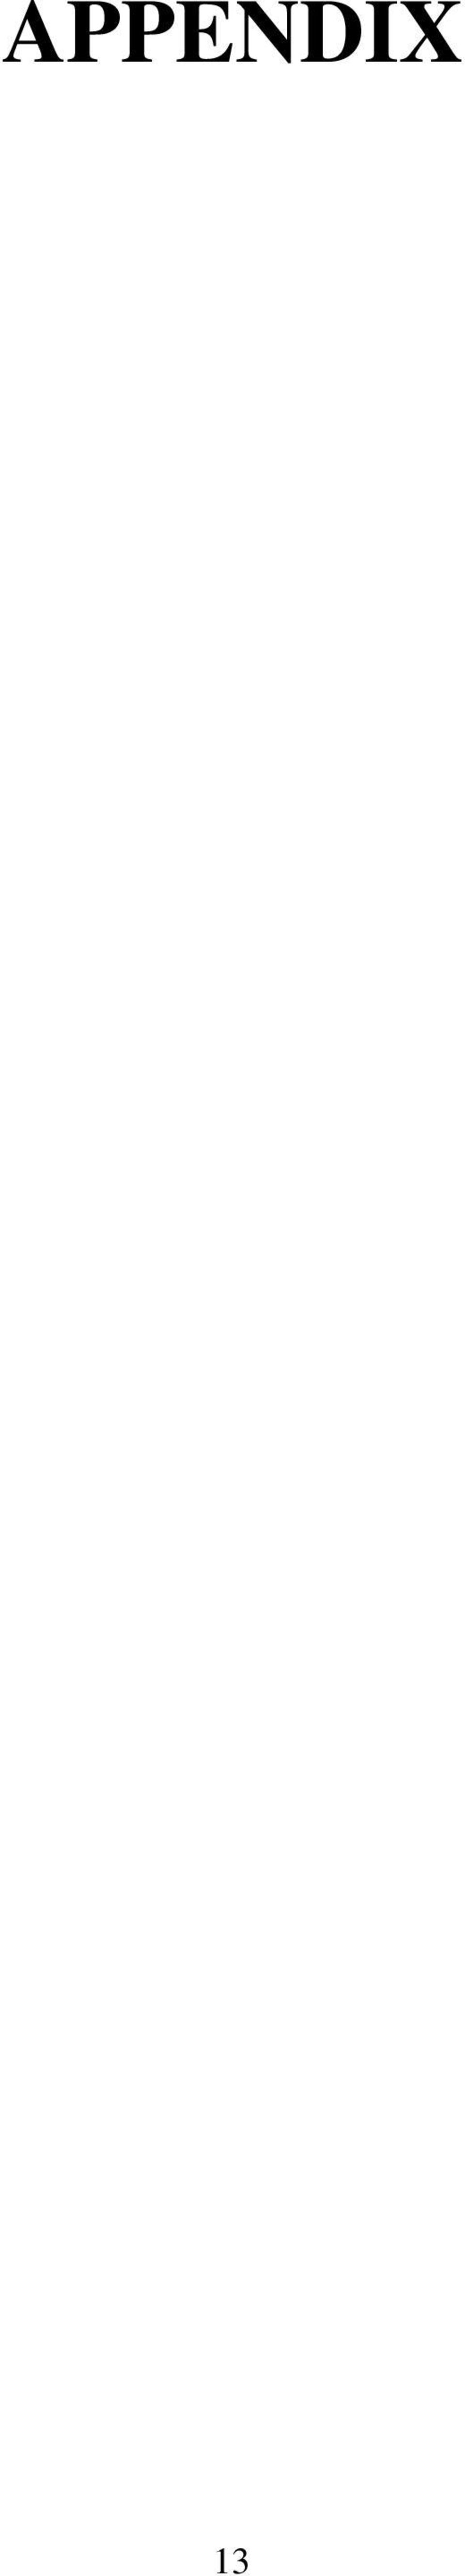 Did a phd thesis on Theological did a phd thesis on thesis  Did a phd thesis  on Theological did a phd thesis on thesis